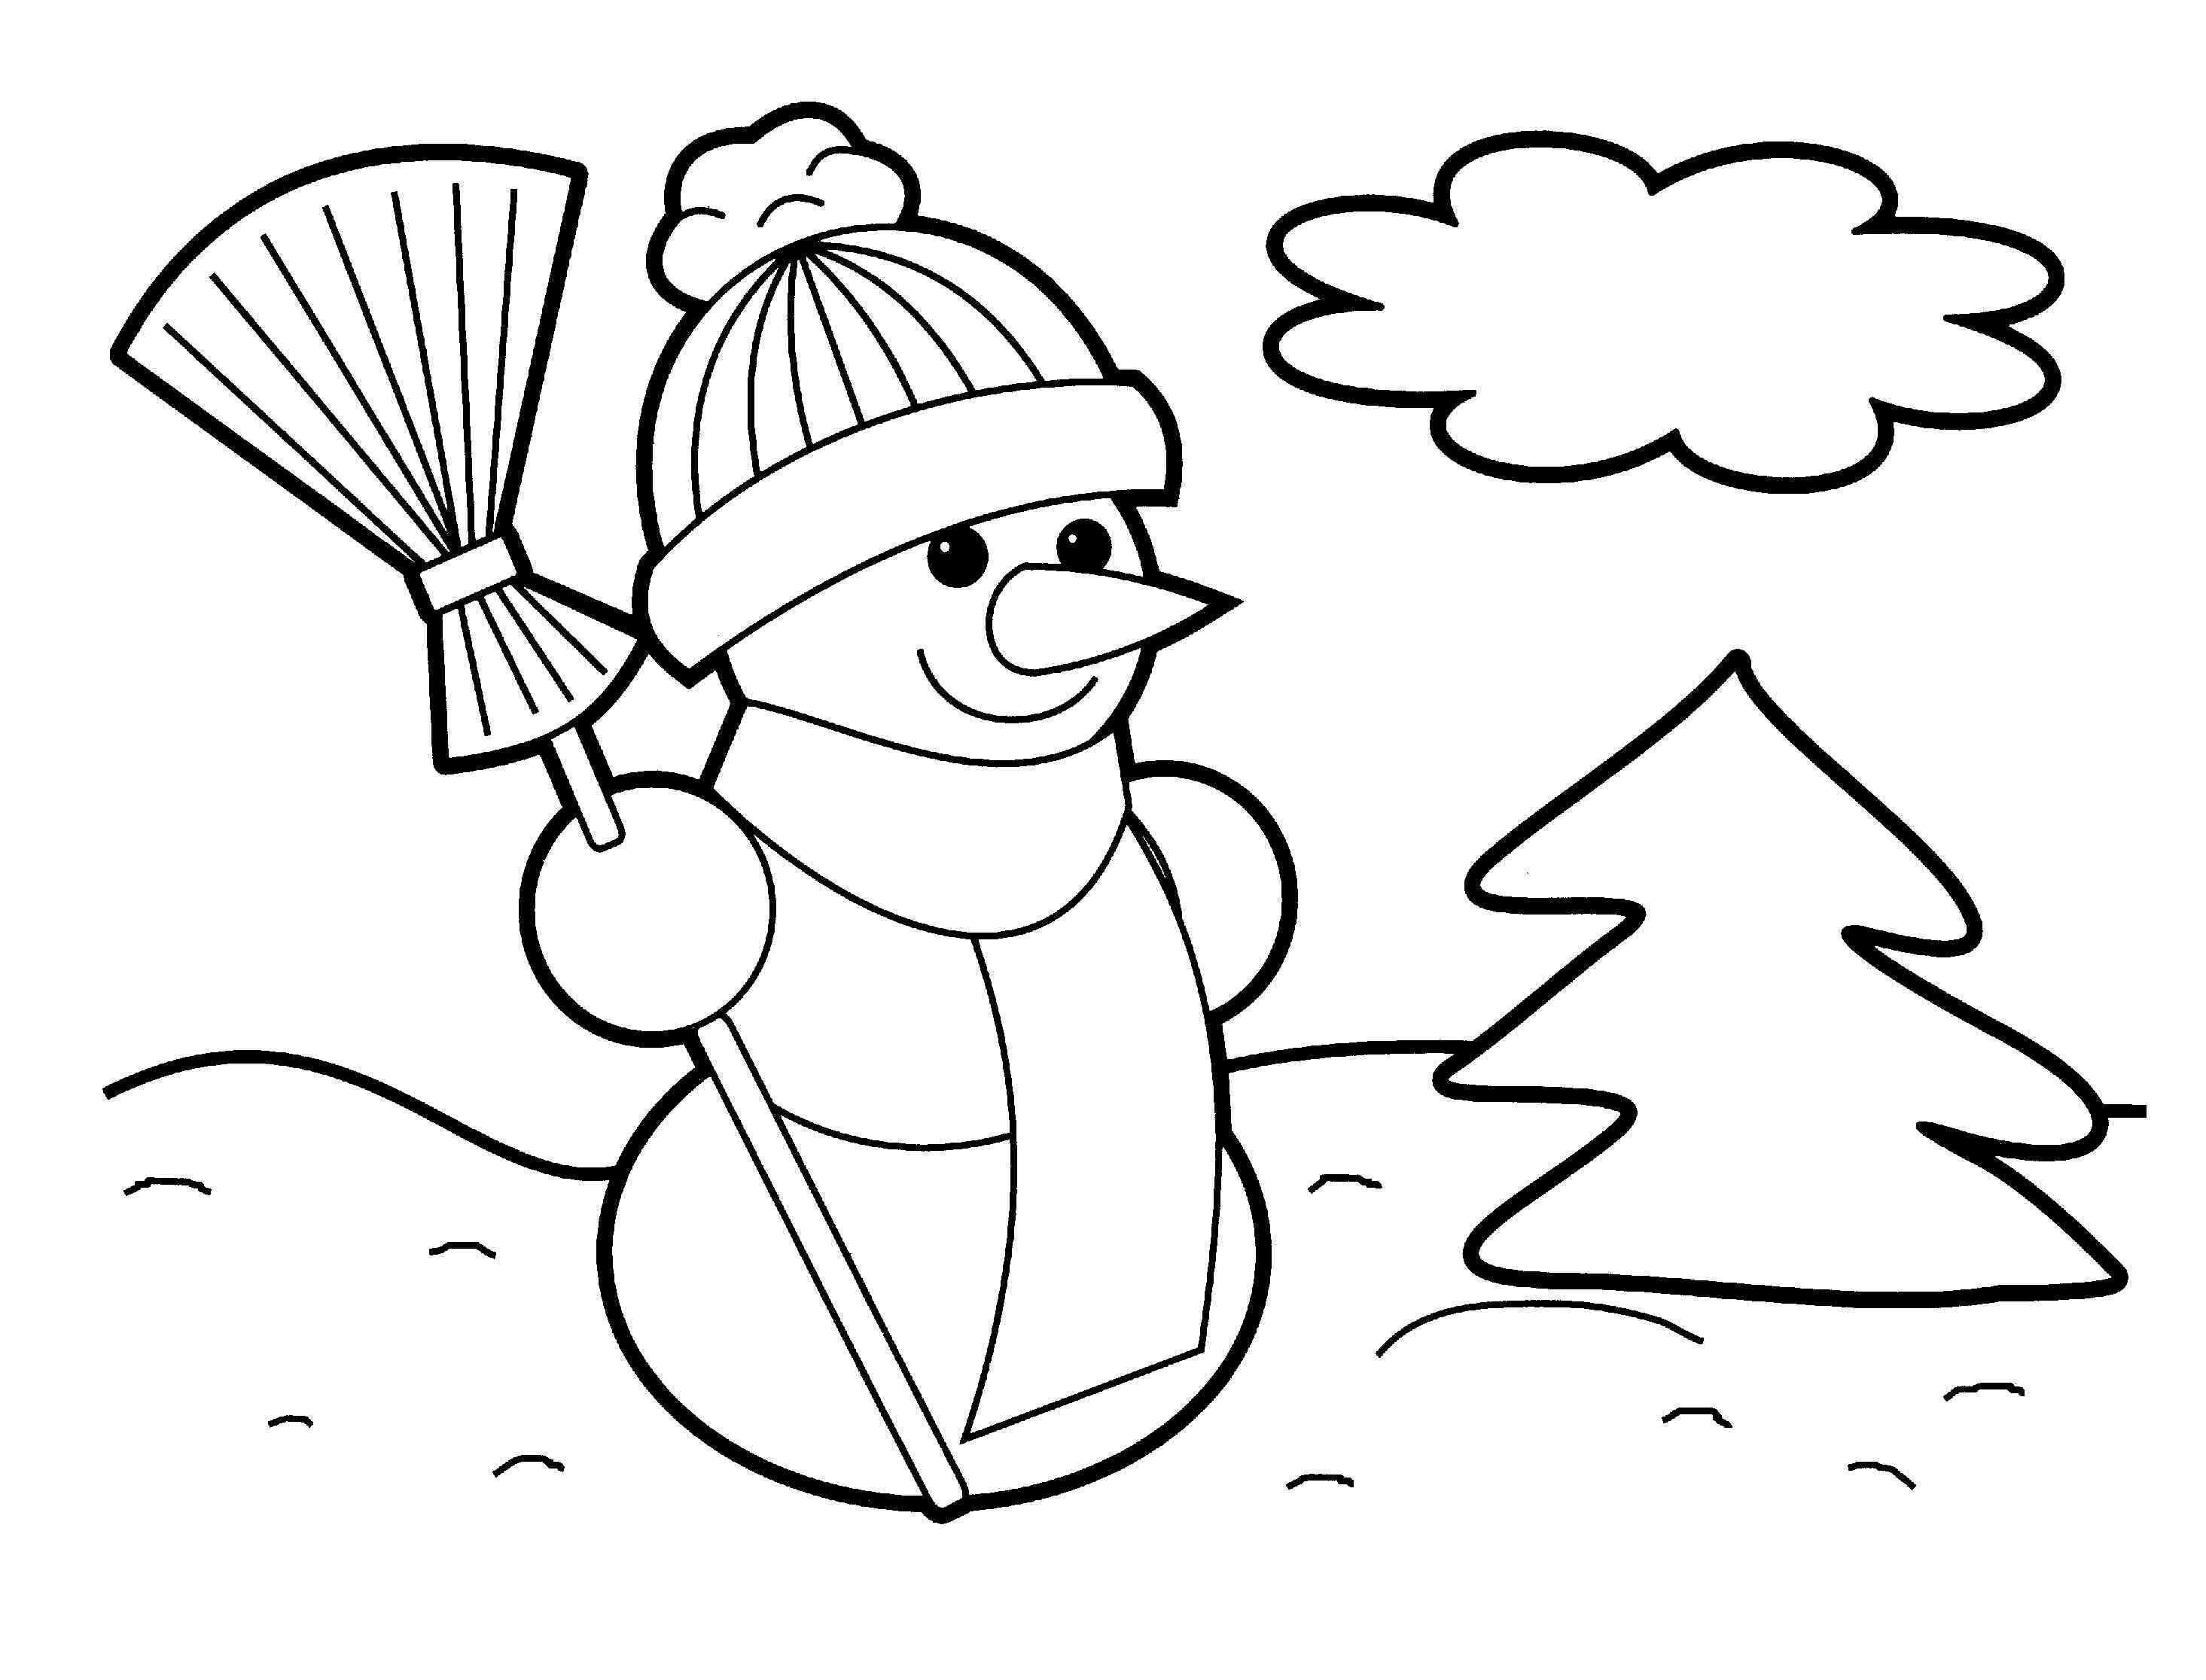 Cute Anime Coloring Pages Elegant Cute Printable Coloring Pages New